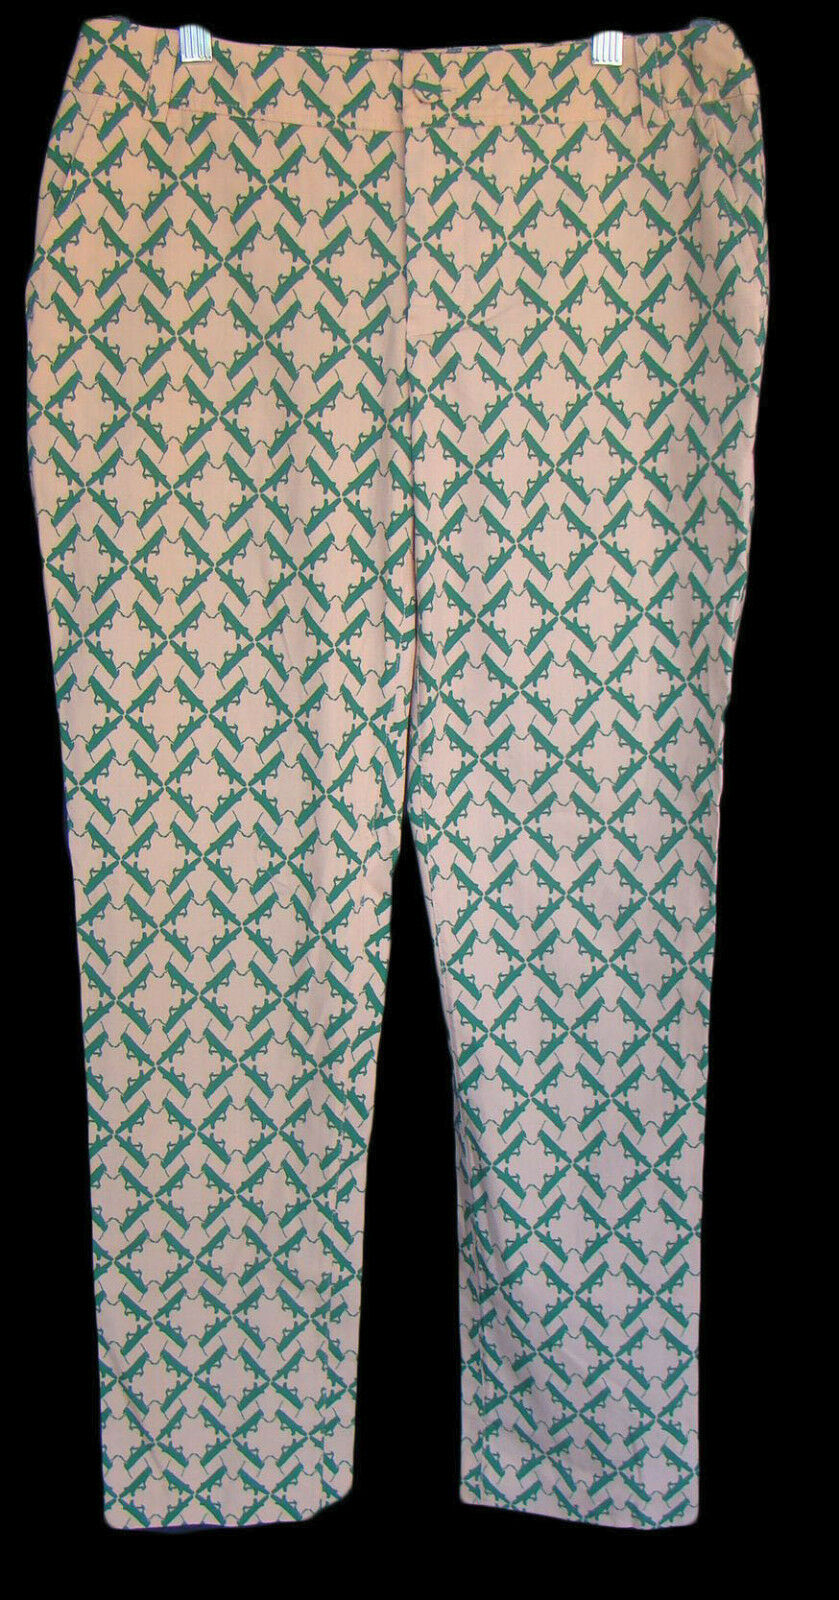 CHARLOTTE TAYLOR ANTHROPOLOGIE Size 4 Katydid Grasshopper Pants NWT